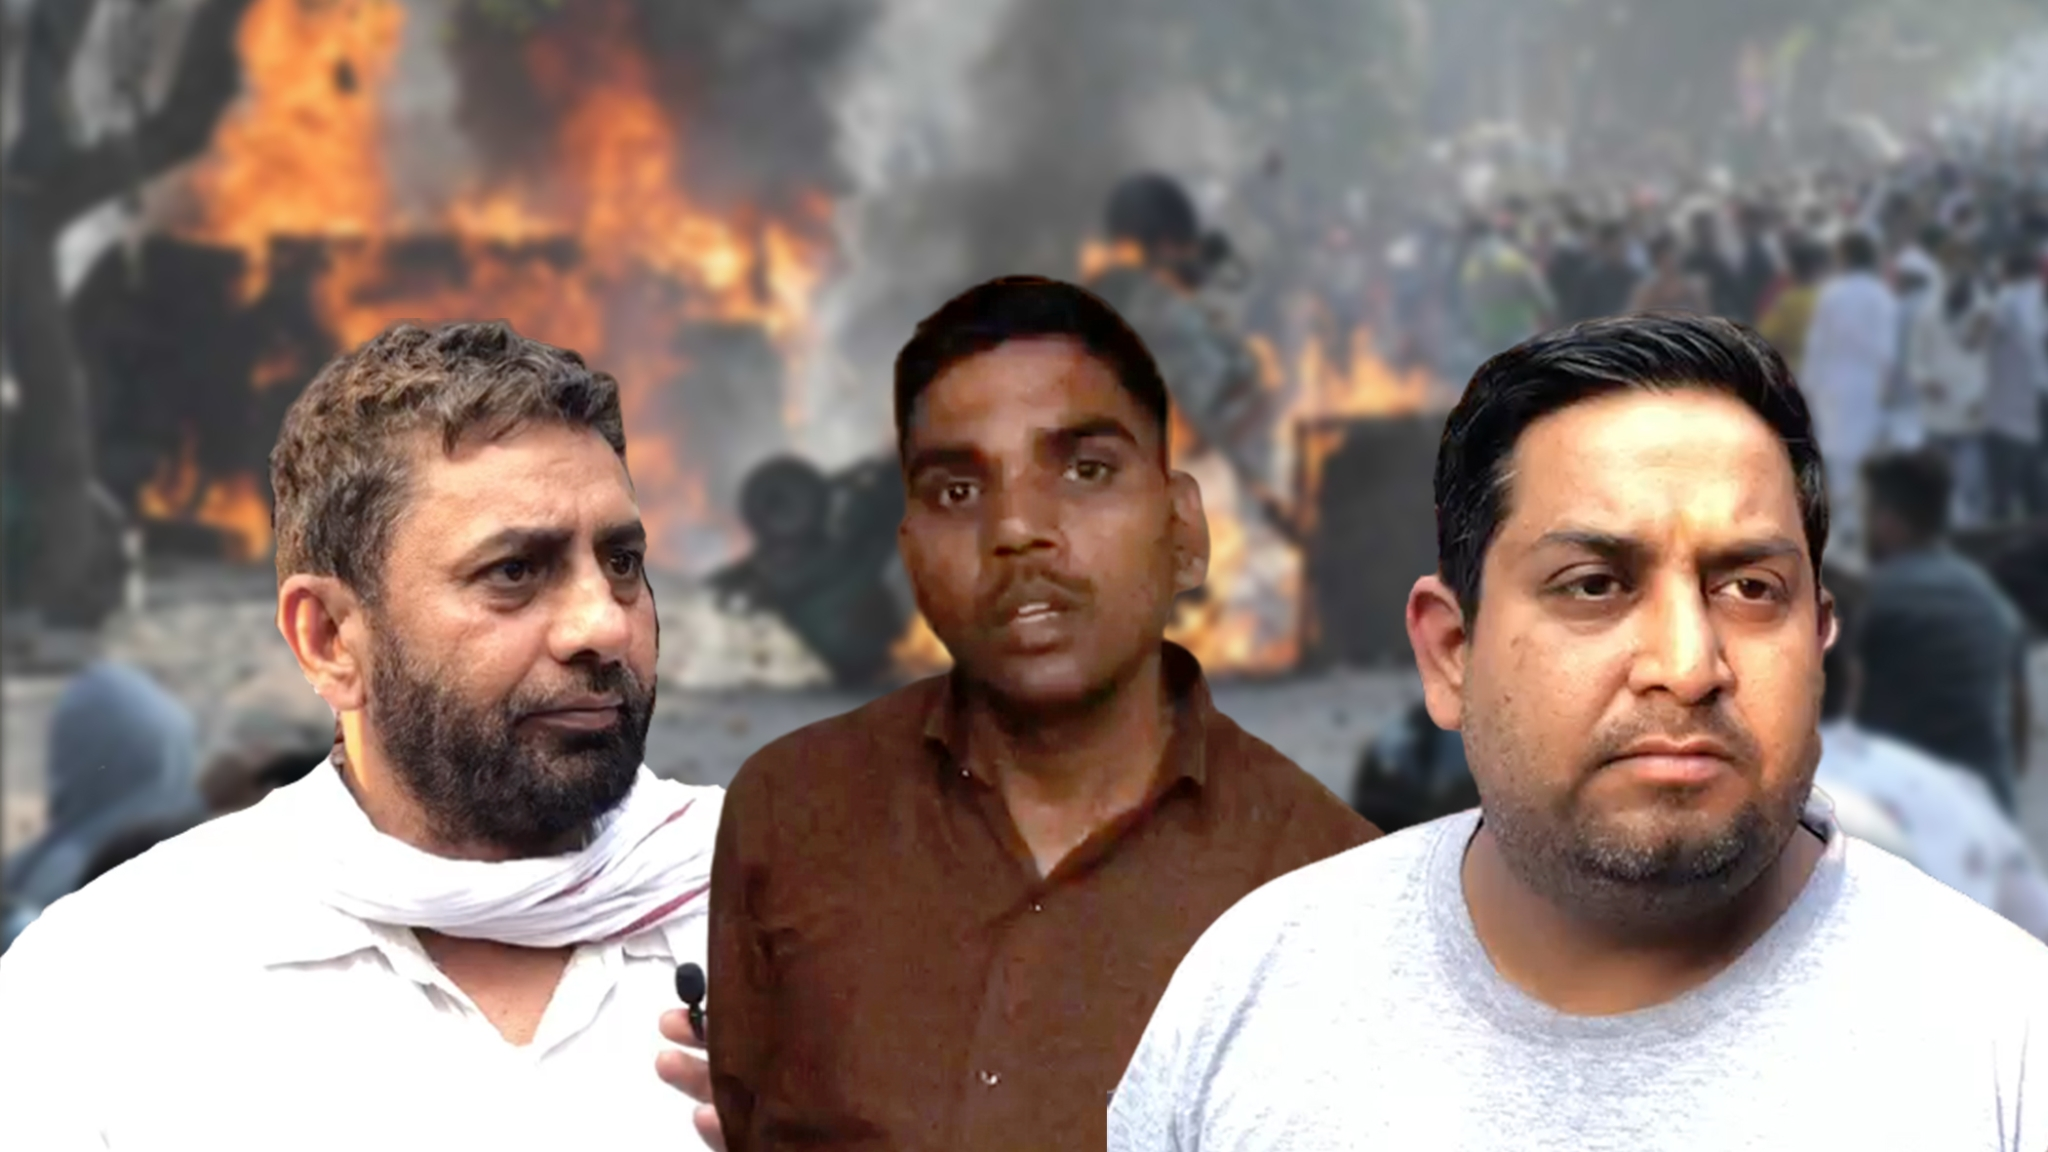 Amid Delhi Violence, Muslims in Mustafabad Vow to Protect Hindus